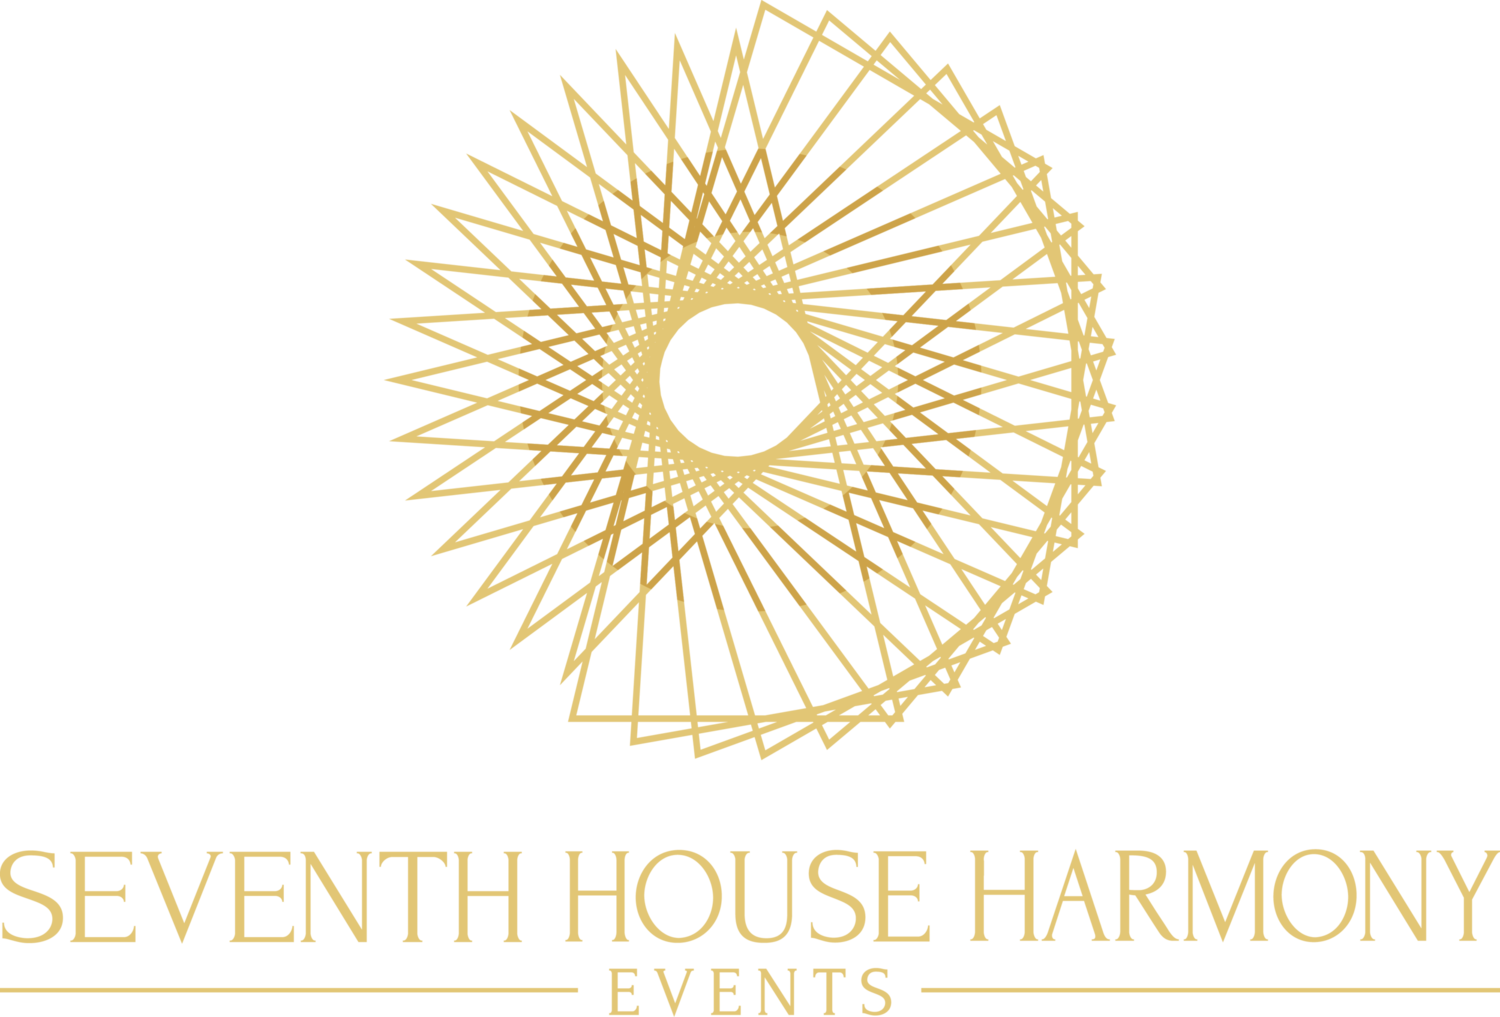 Seventh House Harmony Events